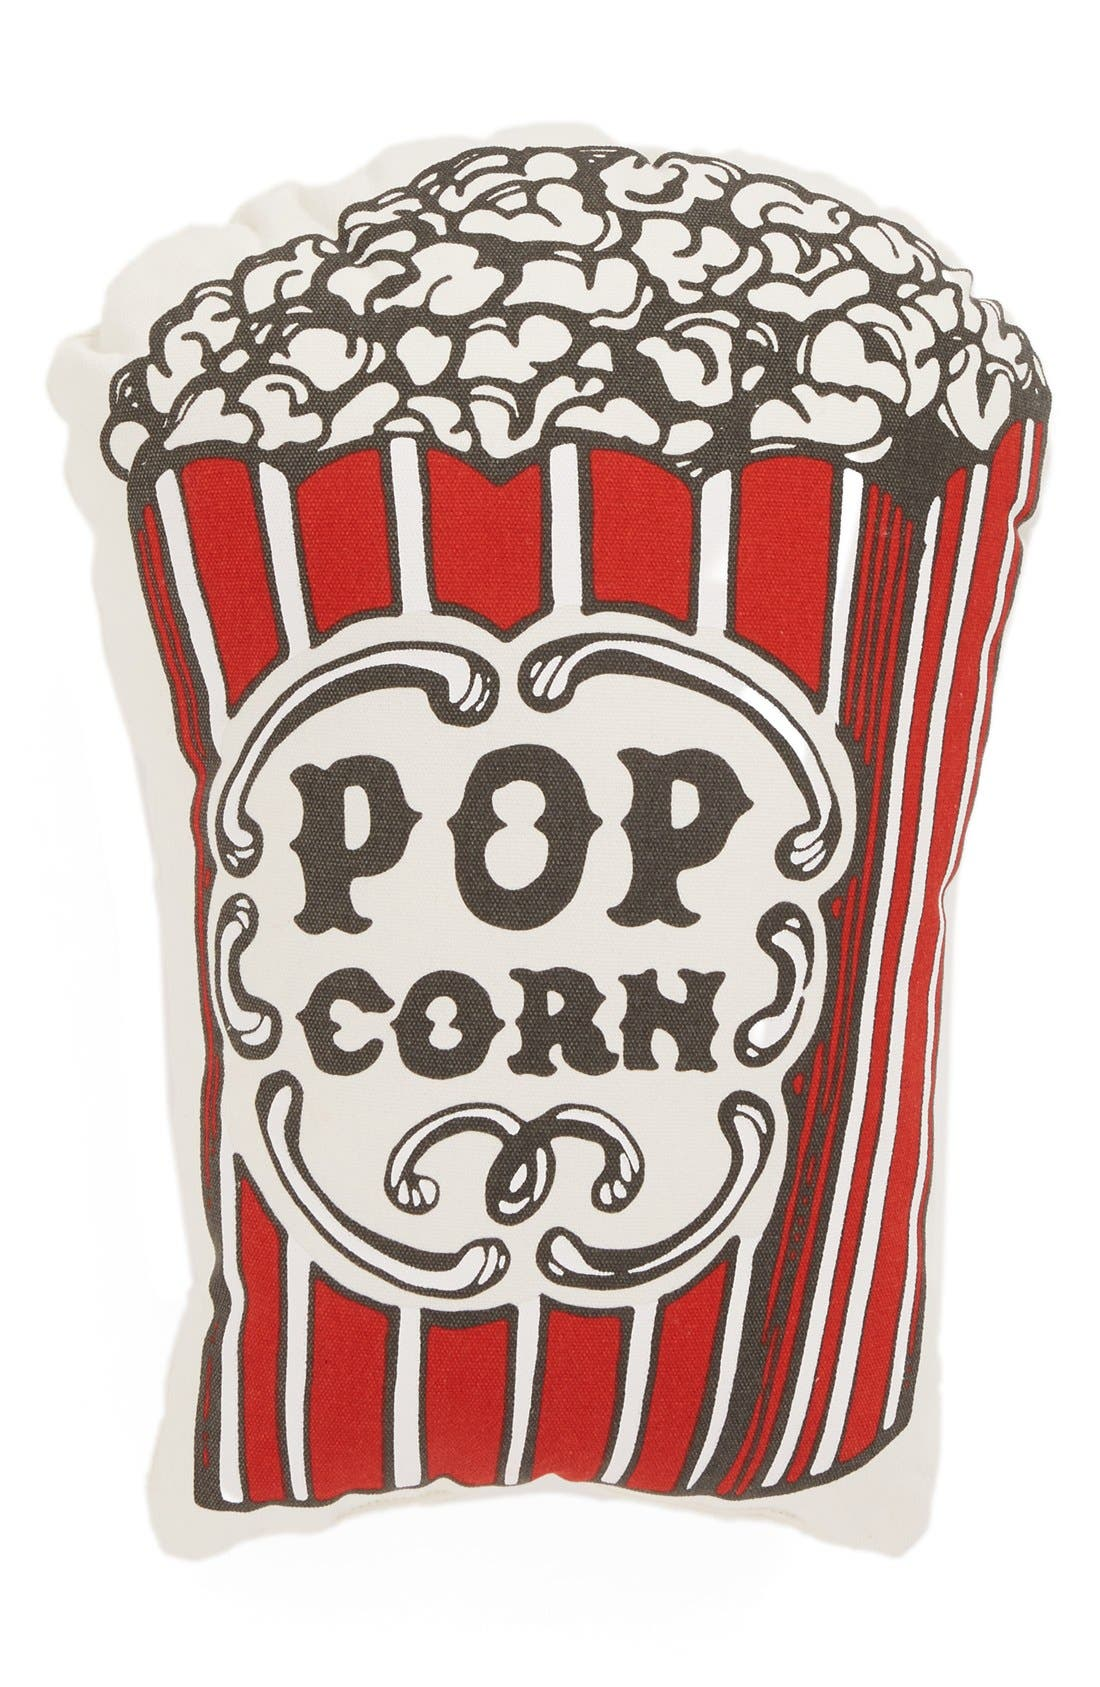 Alternate Image 1 Selected - Levtex 'Popcorn' Accent Pillow